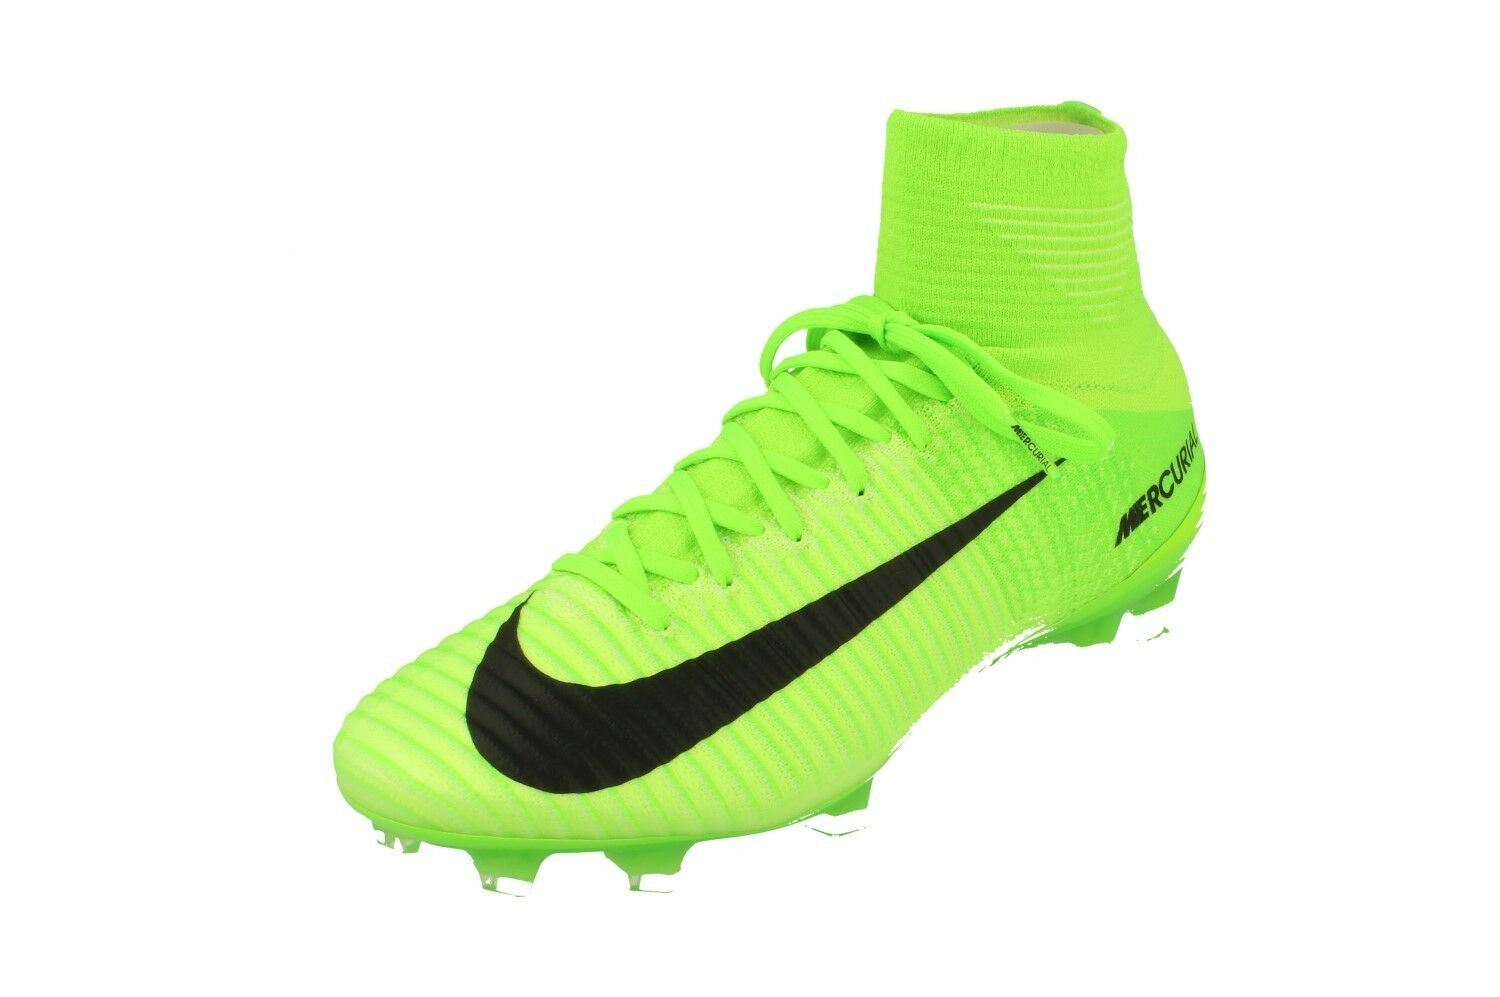 Nike Mercurial Superfly V FG Homme Football Bottes 831940 Soccer Cleats 305